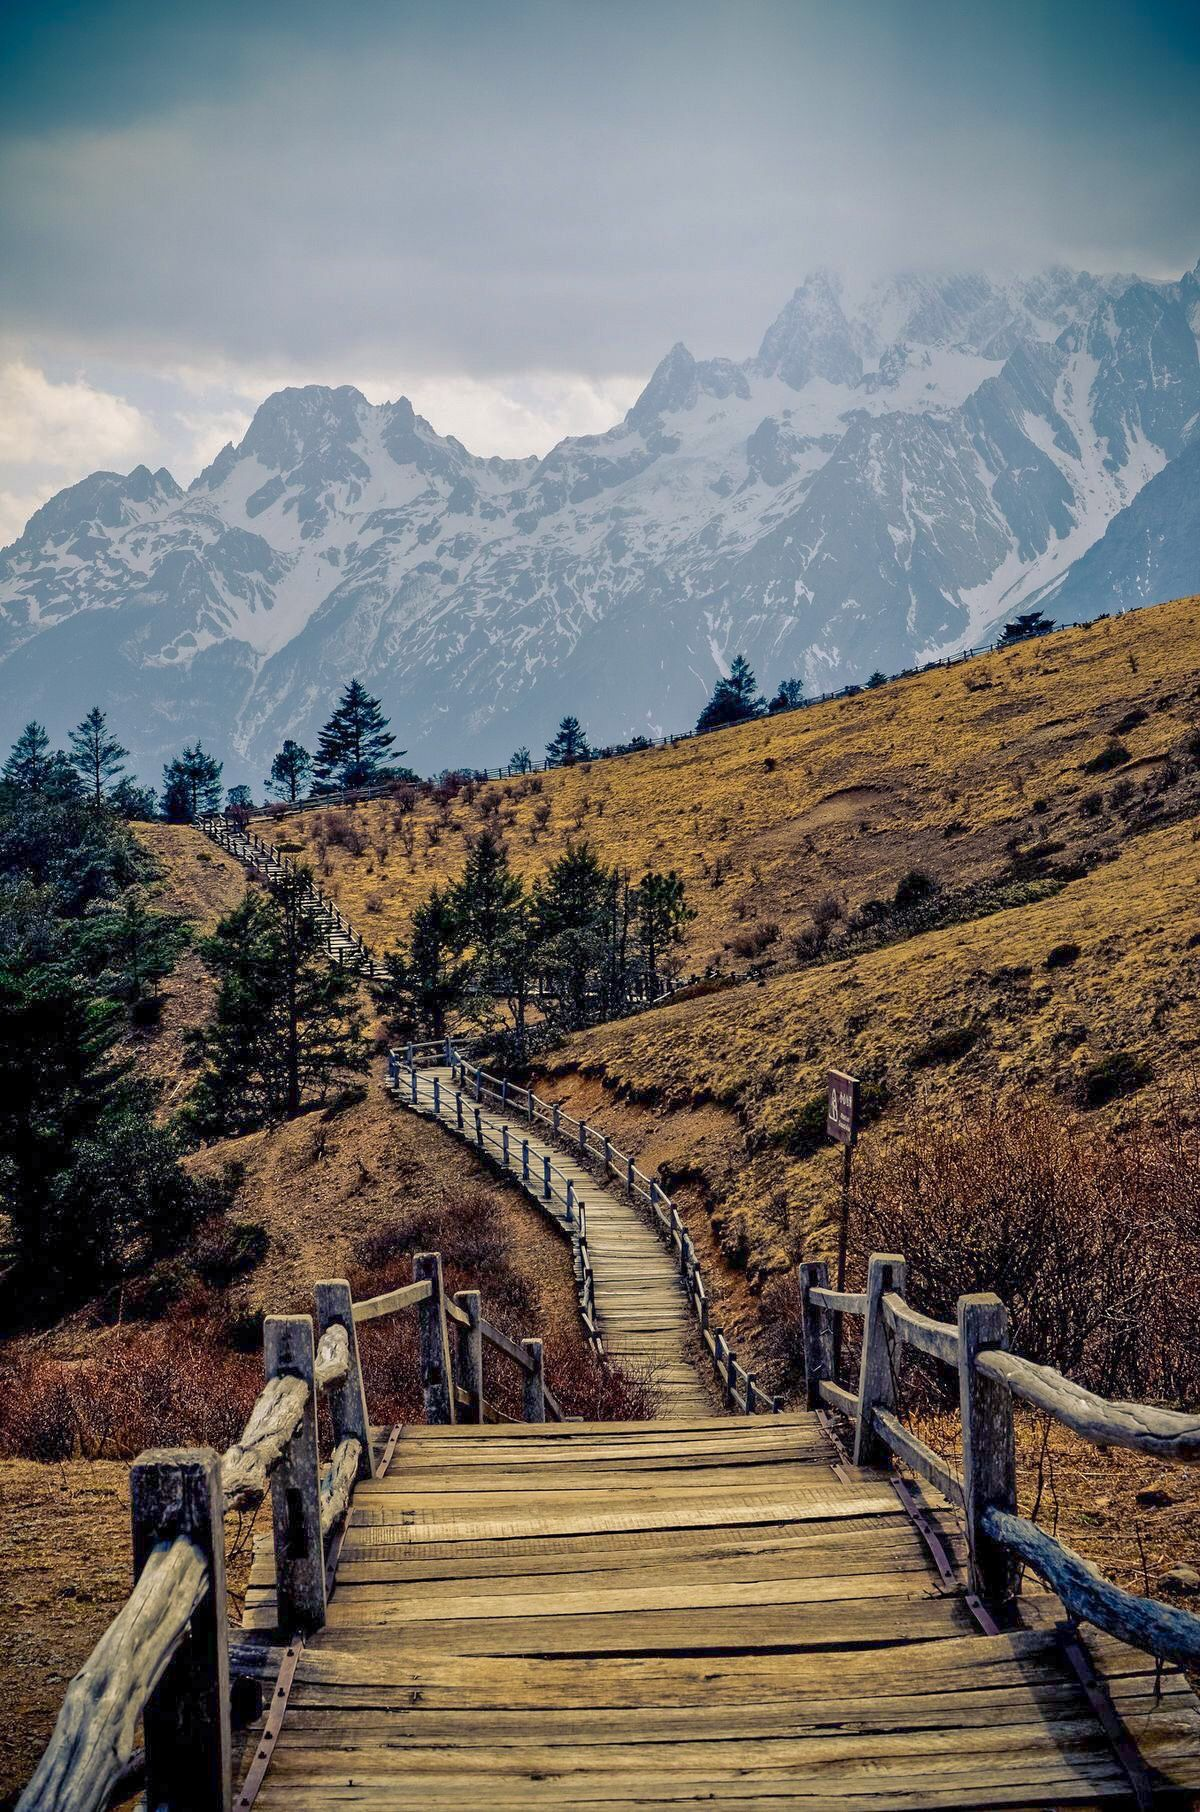 Mountain Hiking Trail In 2020 Places To Travel Nature Mountain Hiking